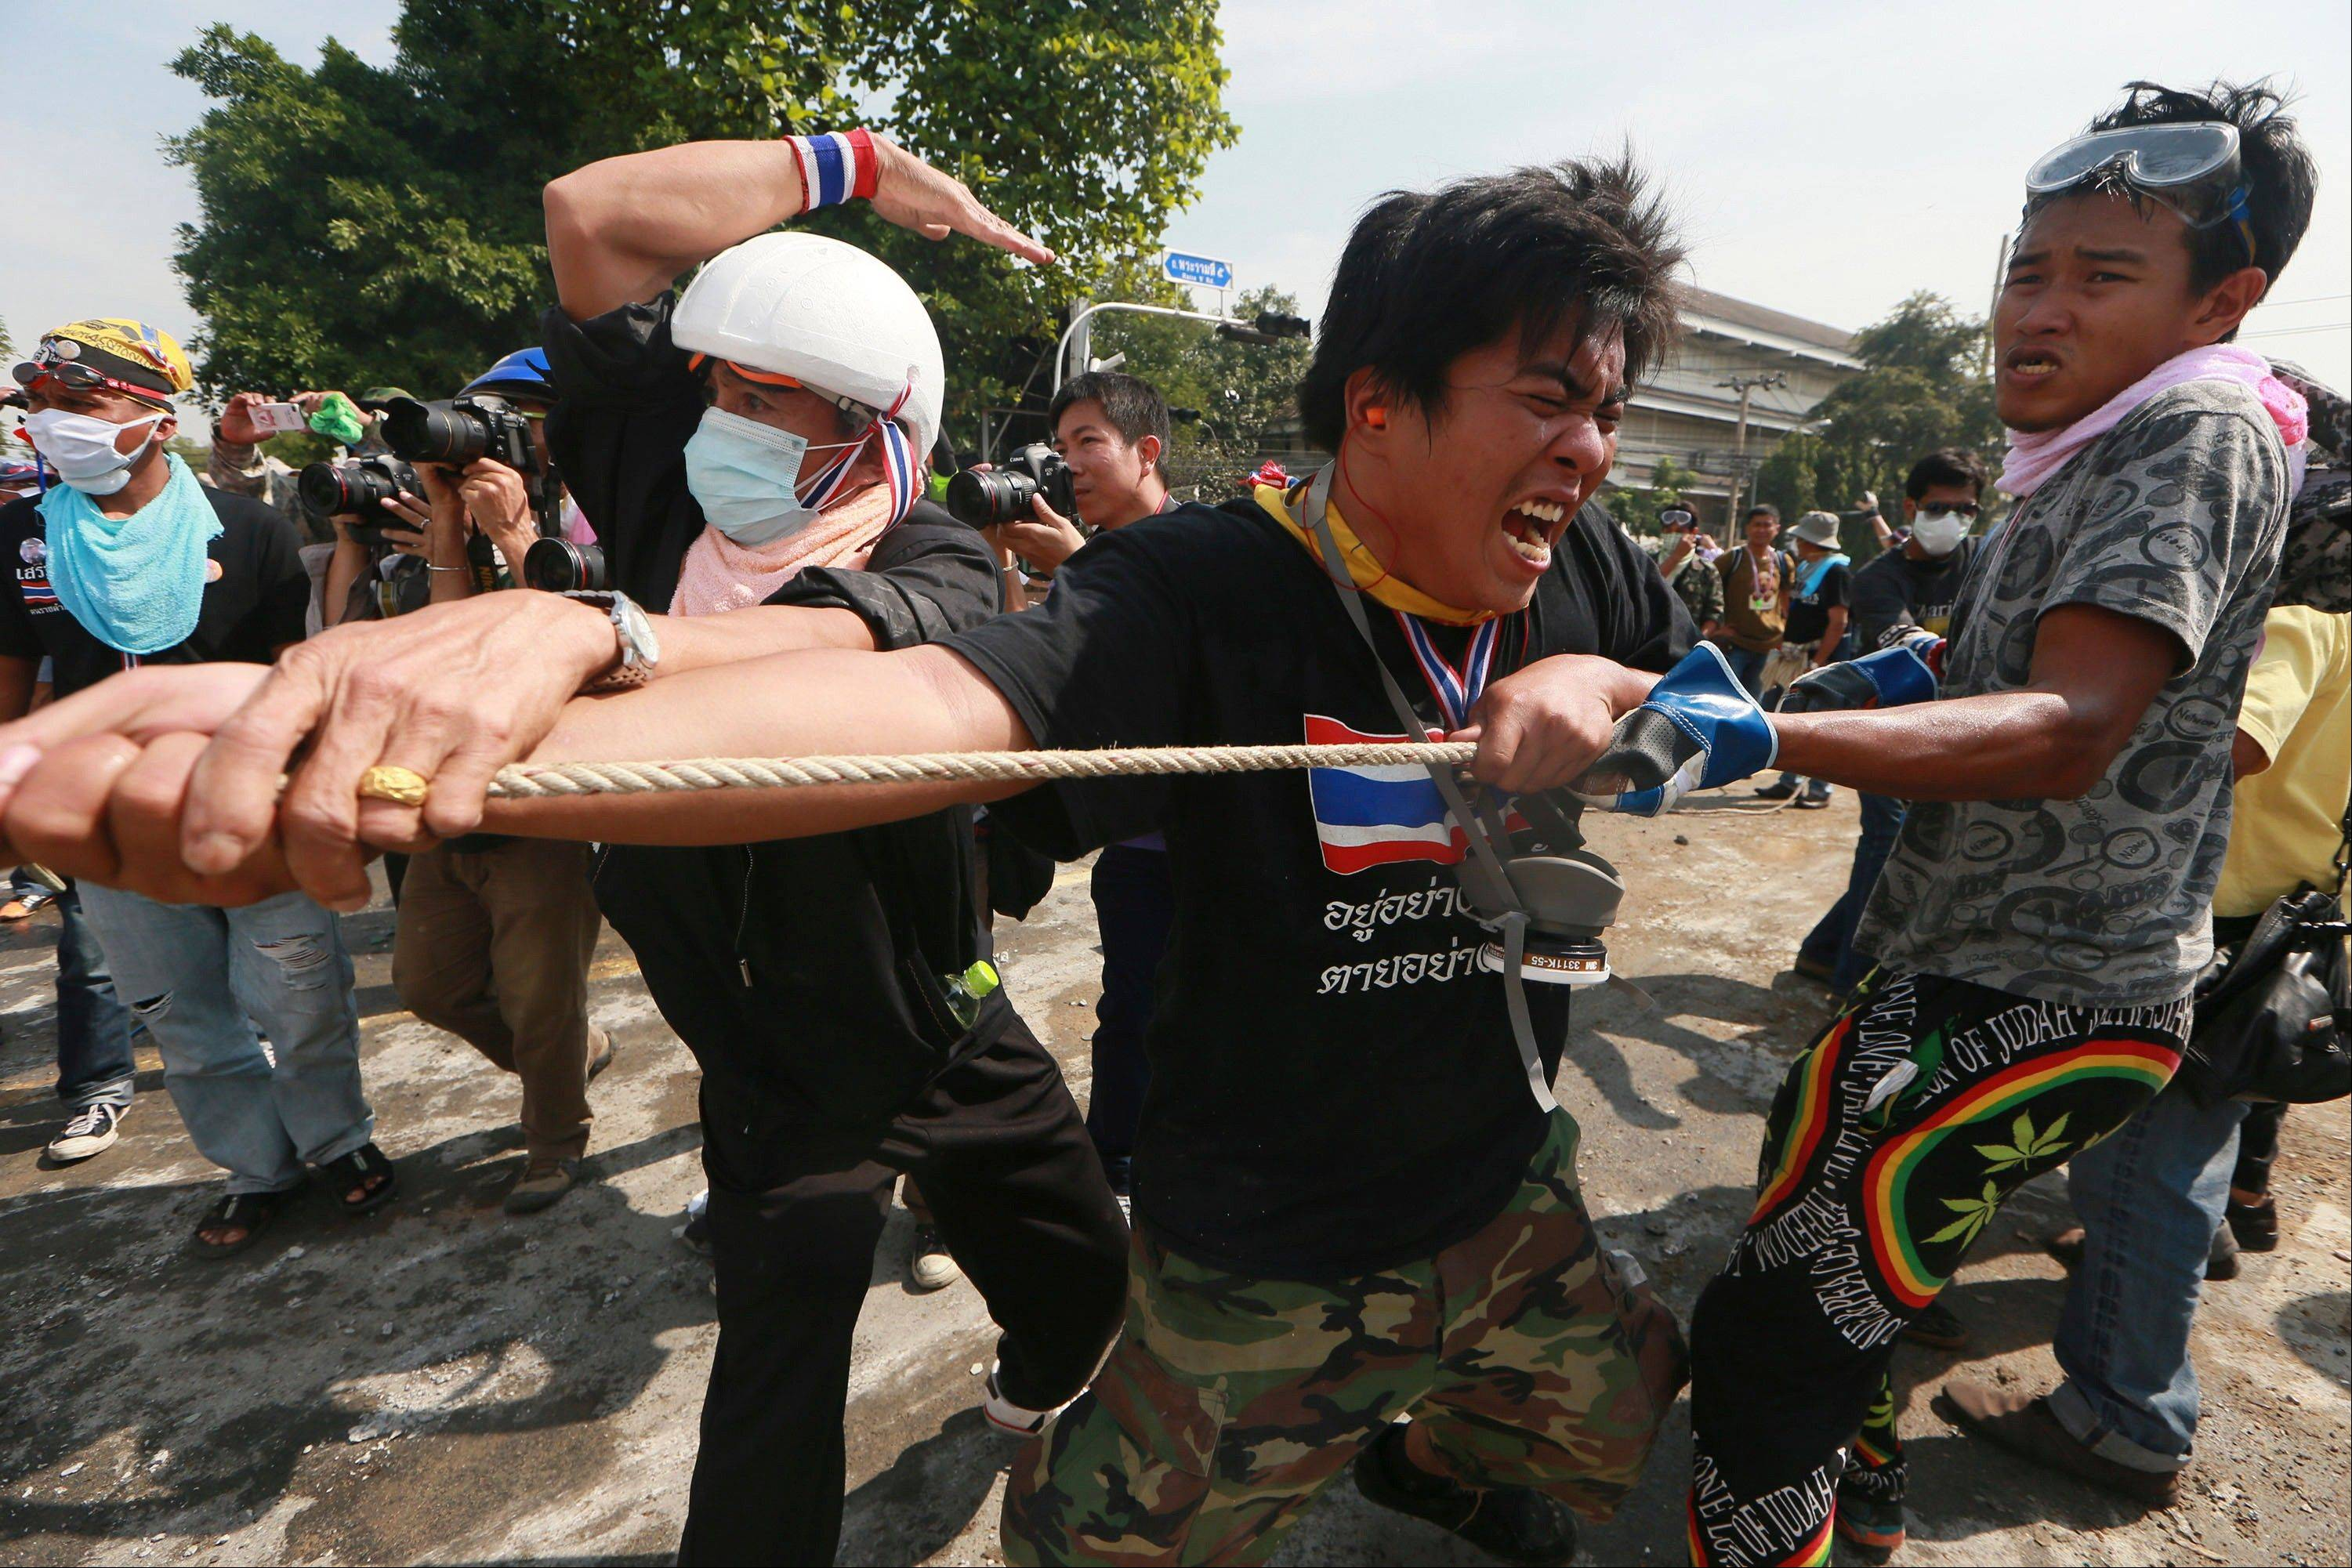 Anti-government protesters remove concrete barriers outside the Government House in Bangkok, Thailand, Tuesday, Dec 3, 2013. Anti-government protesters swarmed into the Thai prime minister�s office compound Tuesday as police stood by and watched, allowing them to claim a symbolic victory after three days of bitter clashes.